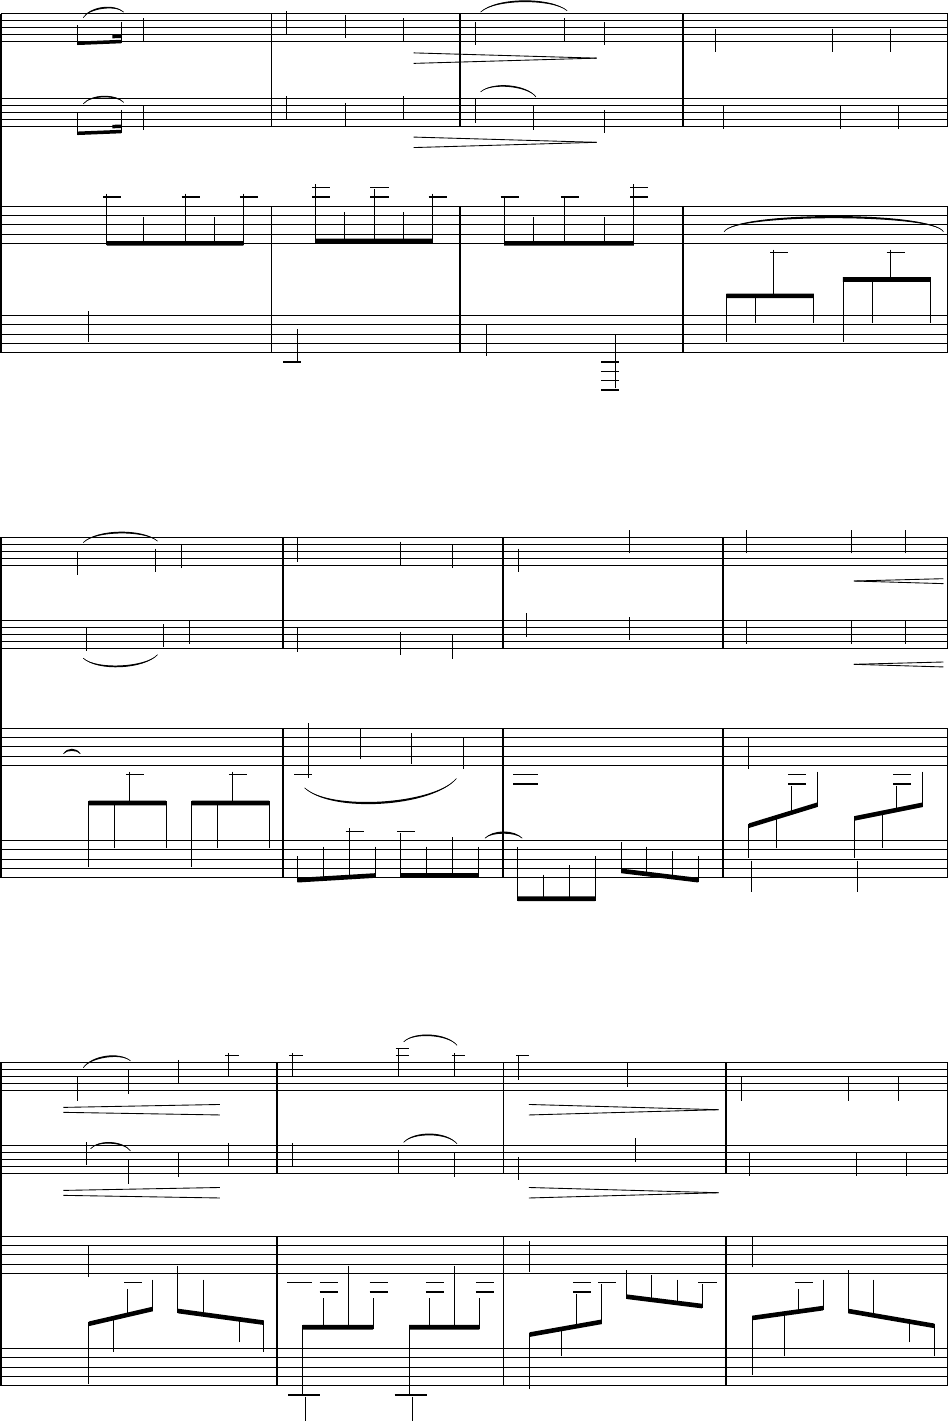 Prelude Shostakovich for 2 Cellos pdf